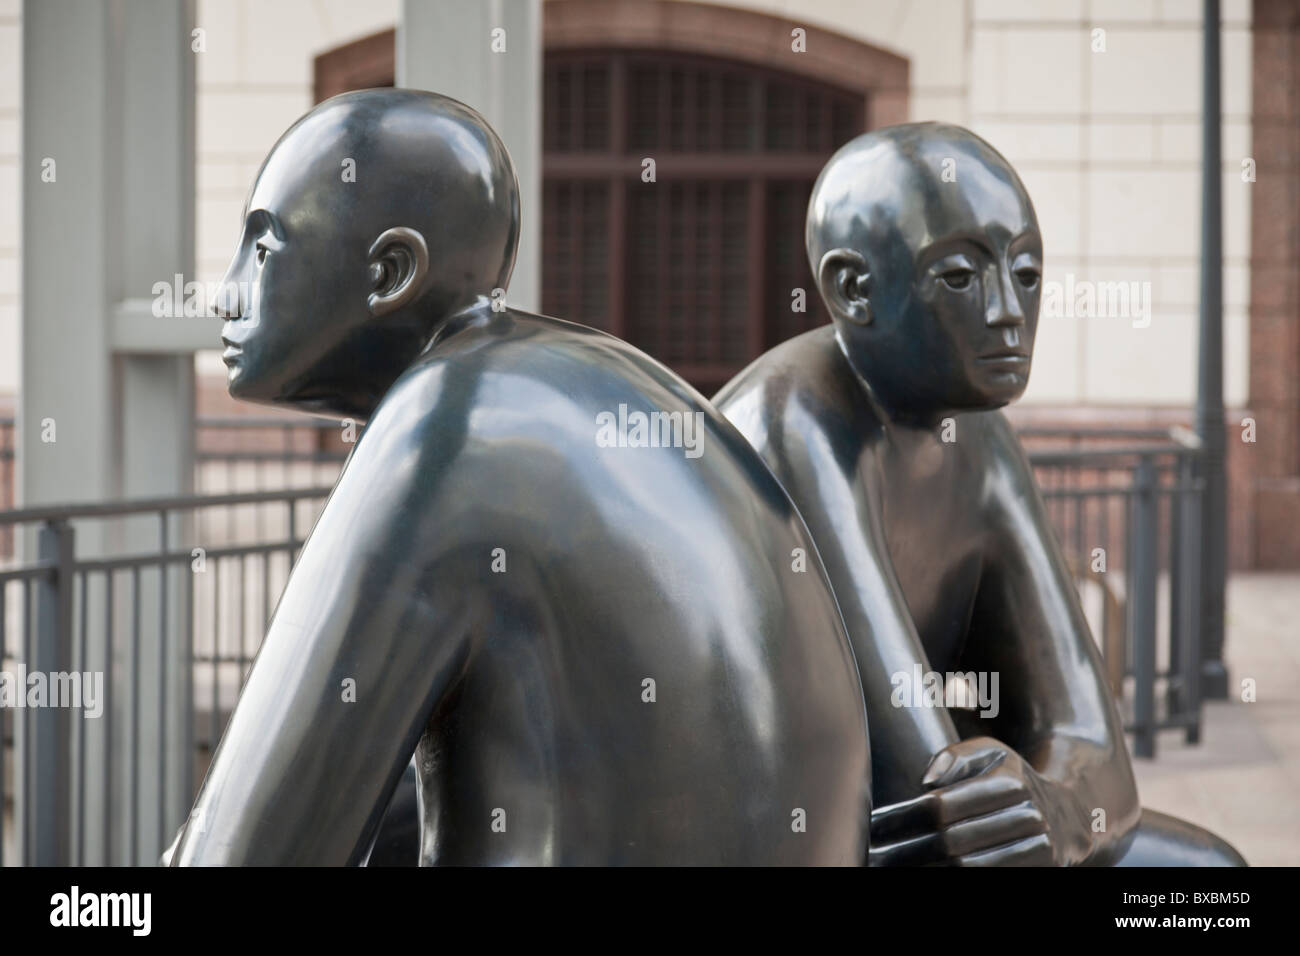 Two Men on a Bench,Giles Penny, Bronze Sculpture - Stock Image